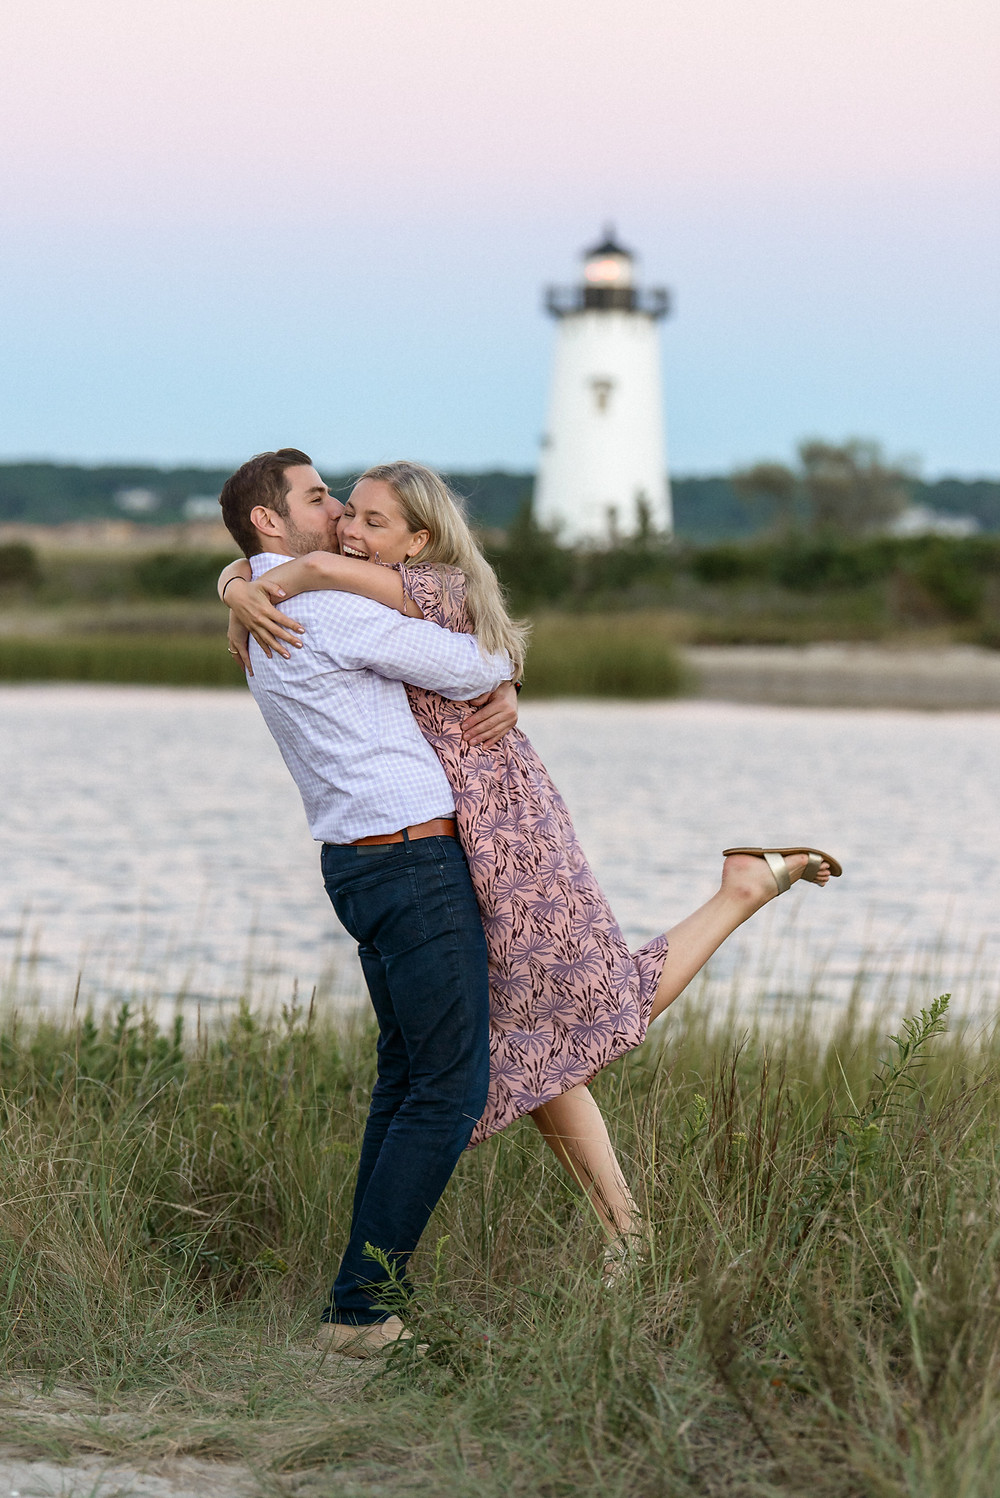 Engagement photos martha's vineyard photo by David Welch Photography